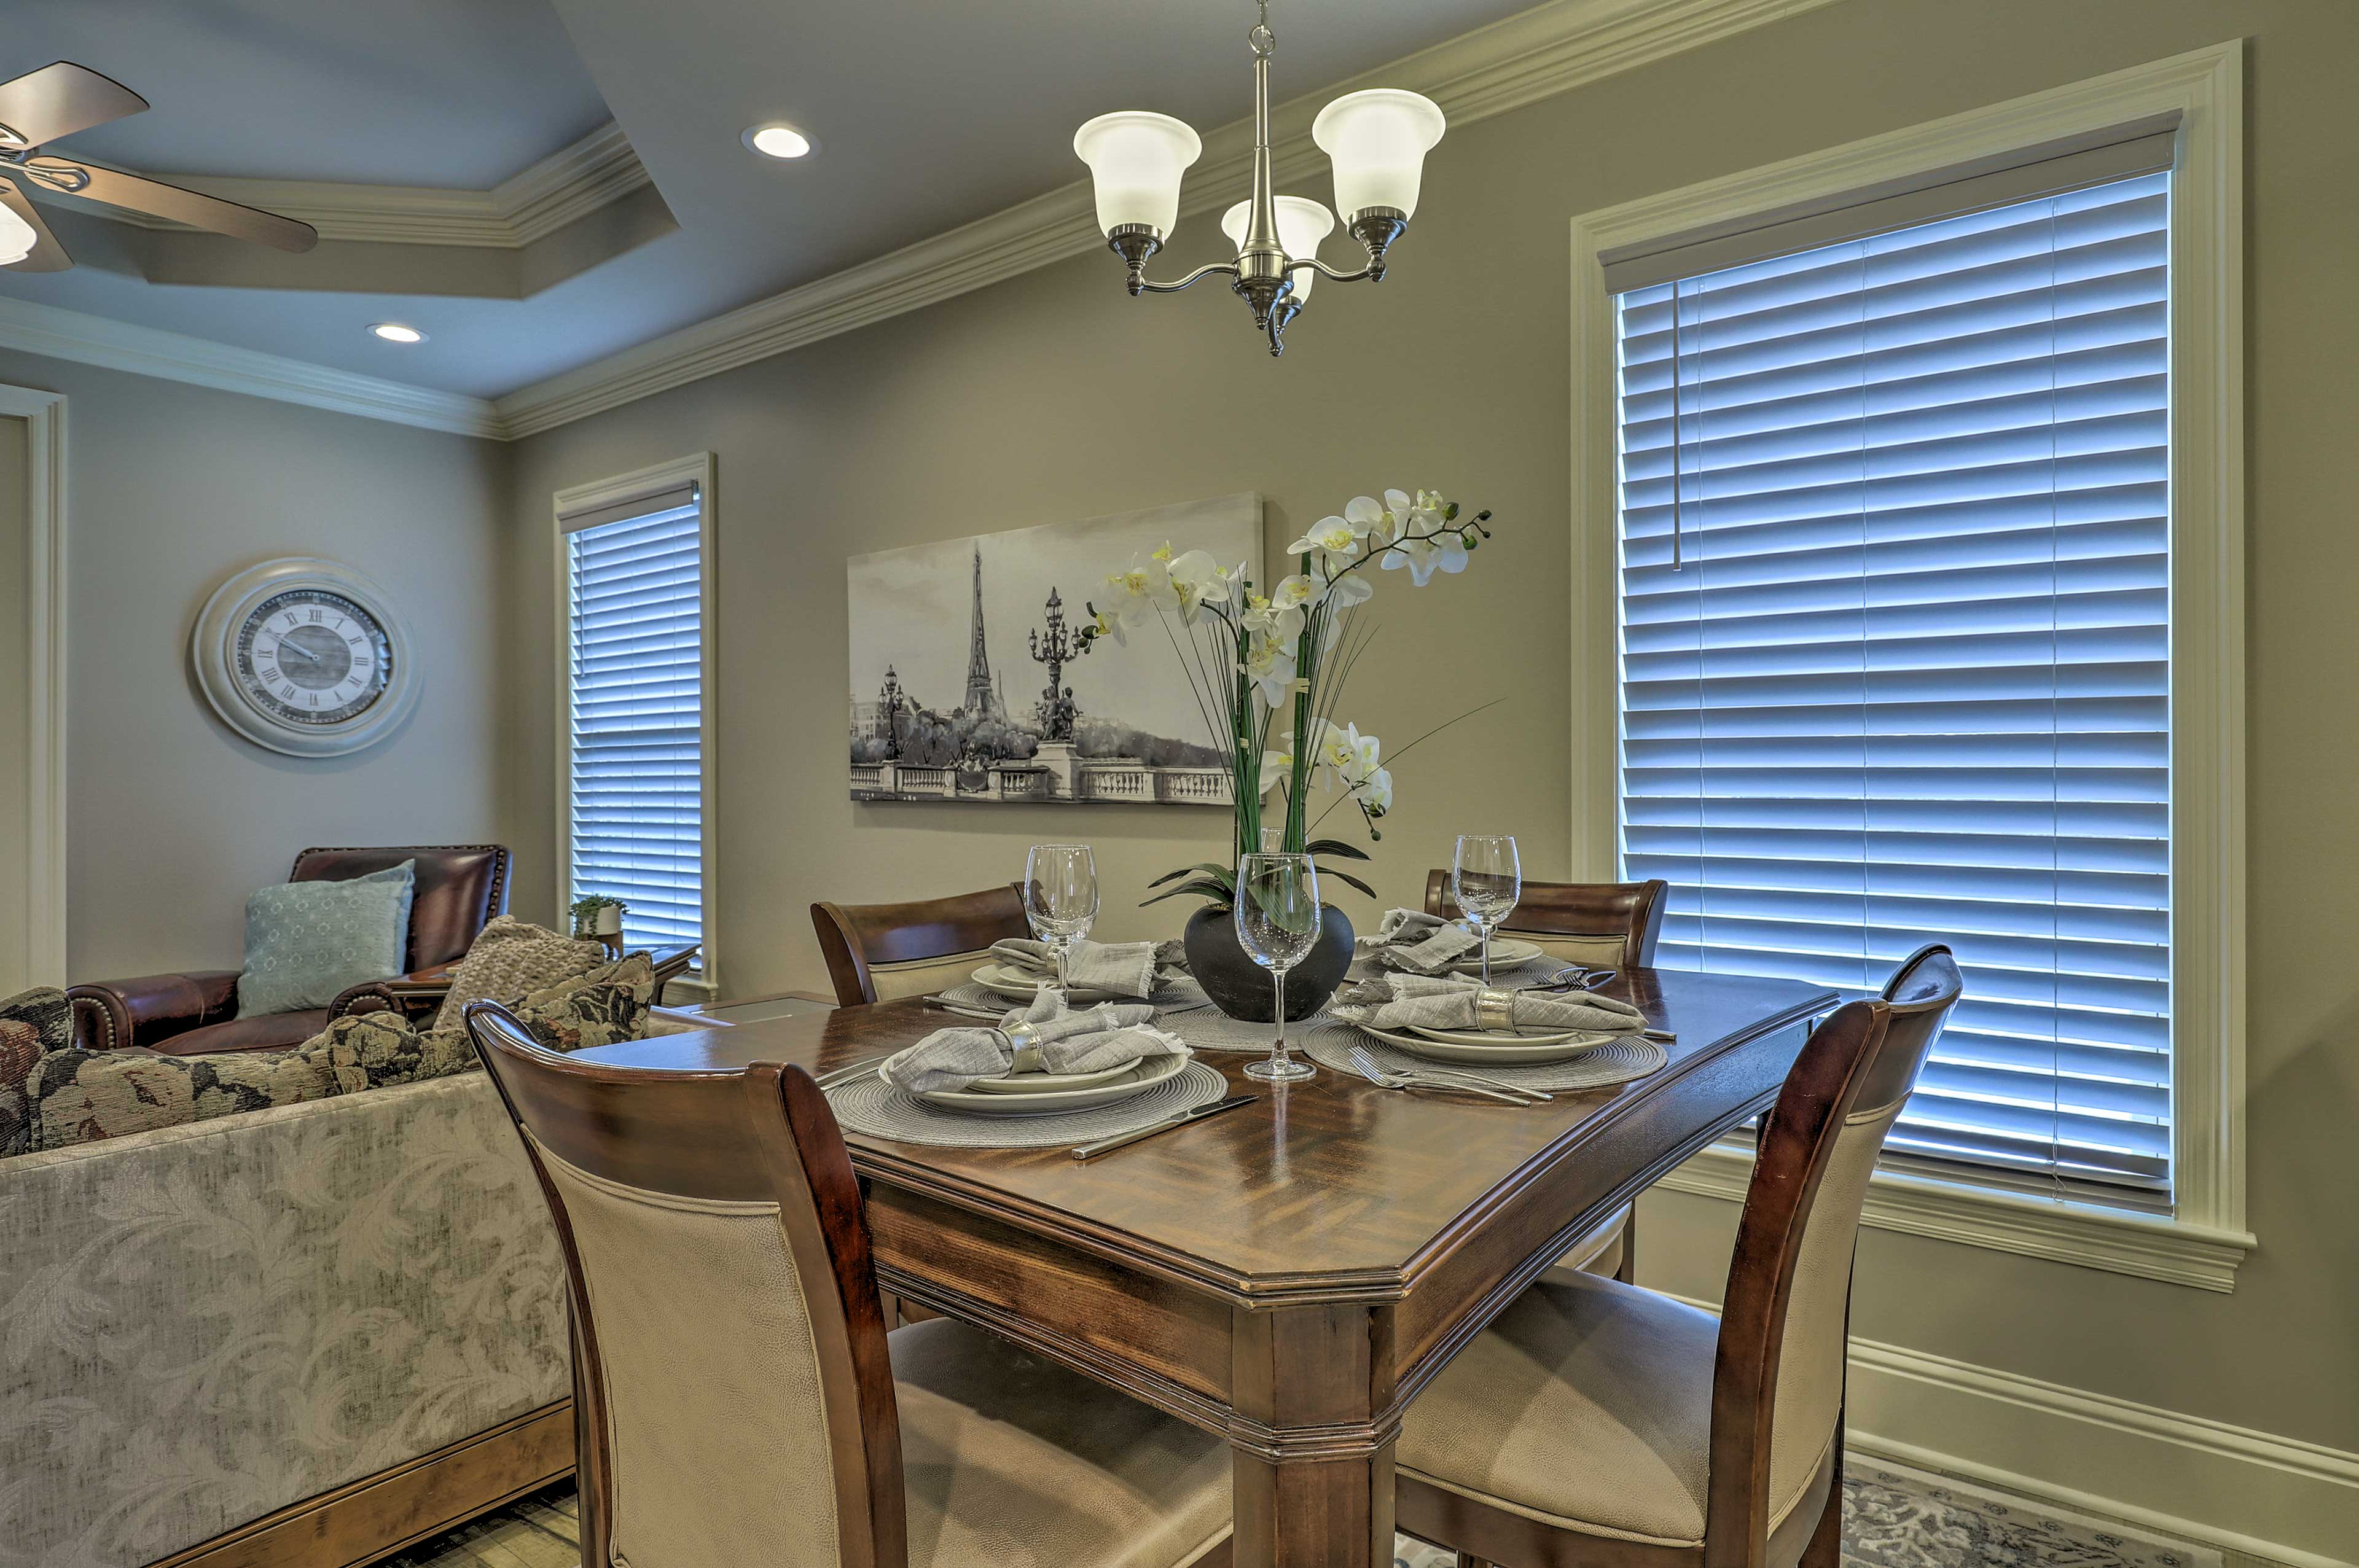 The dining table sits between the kitchen and living area.